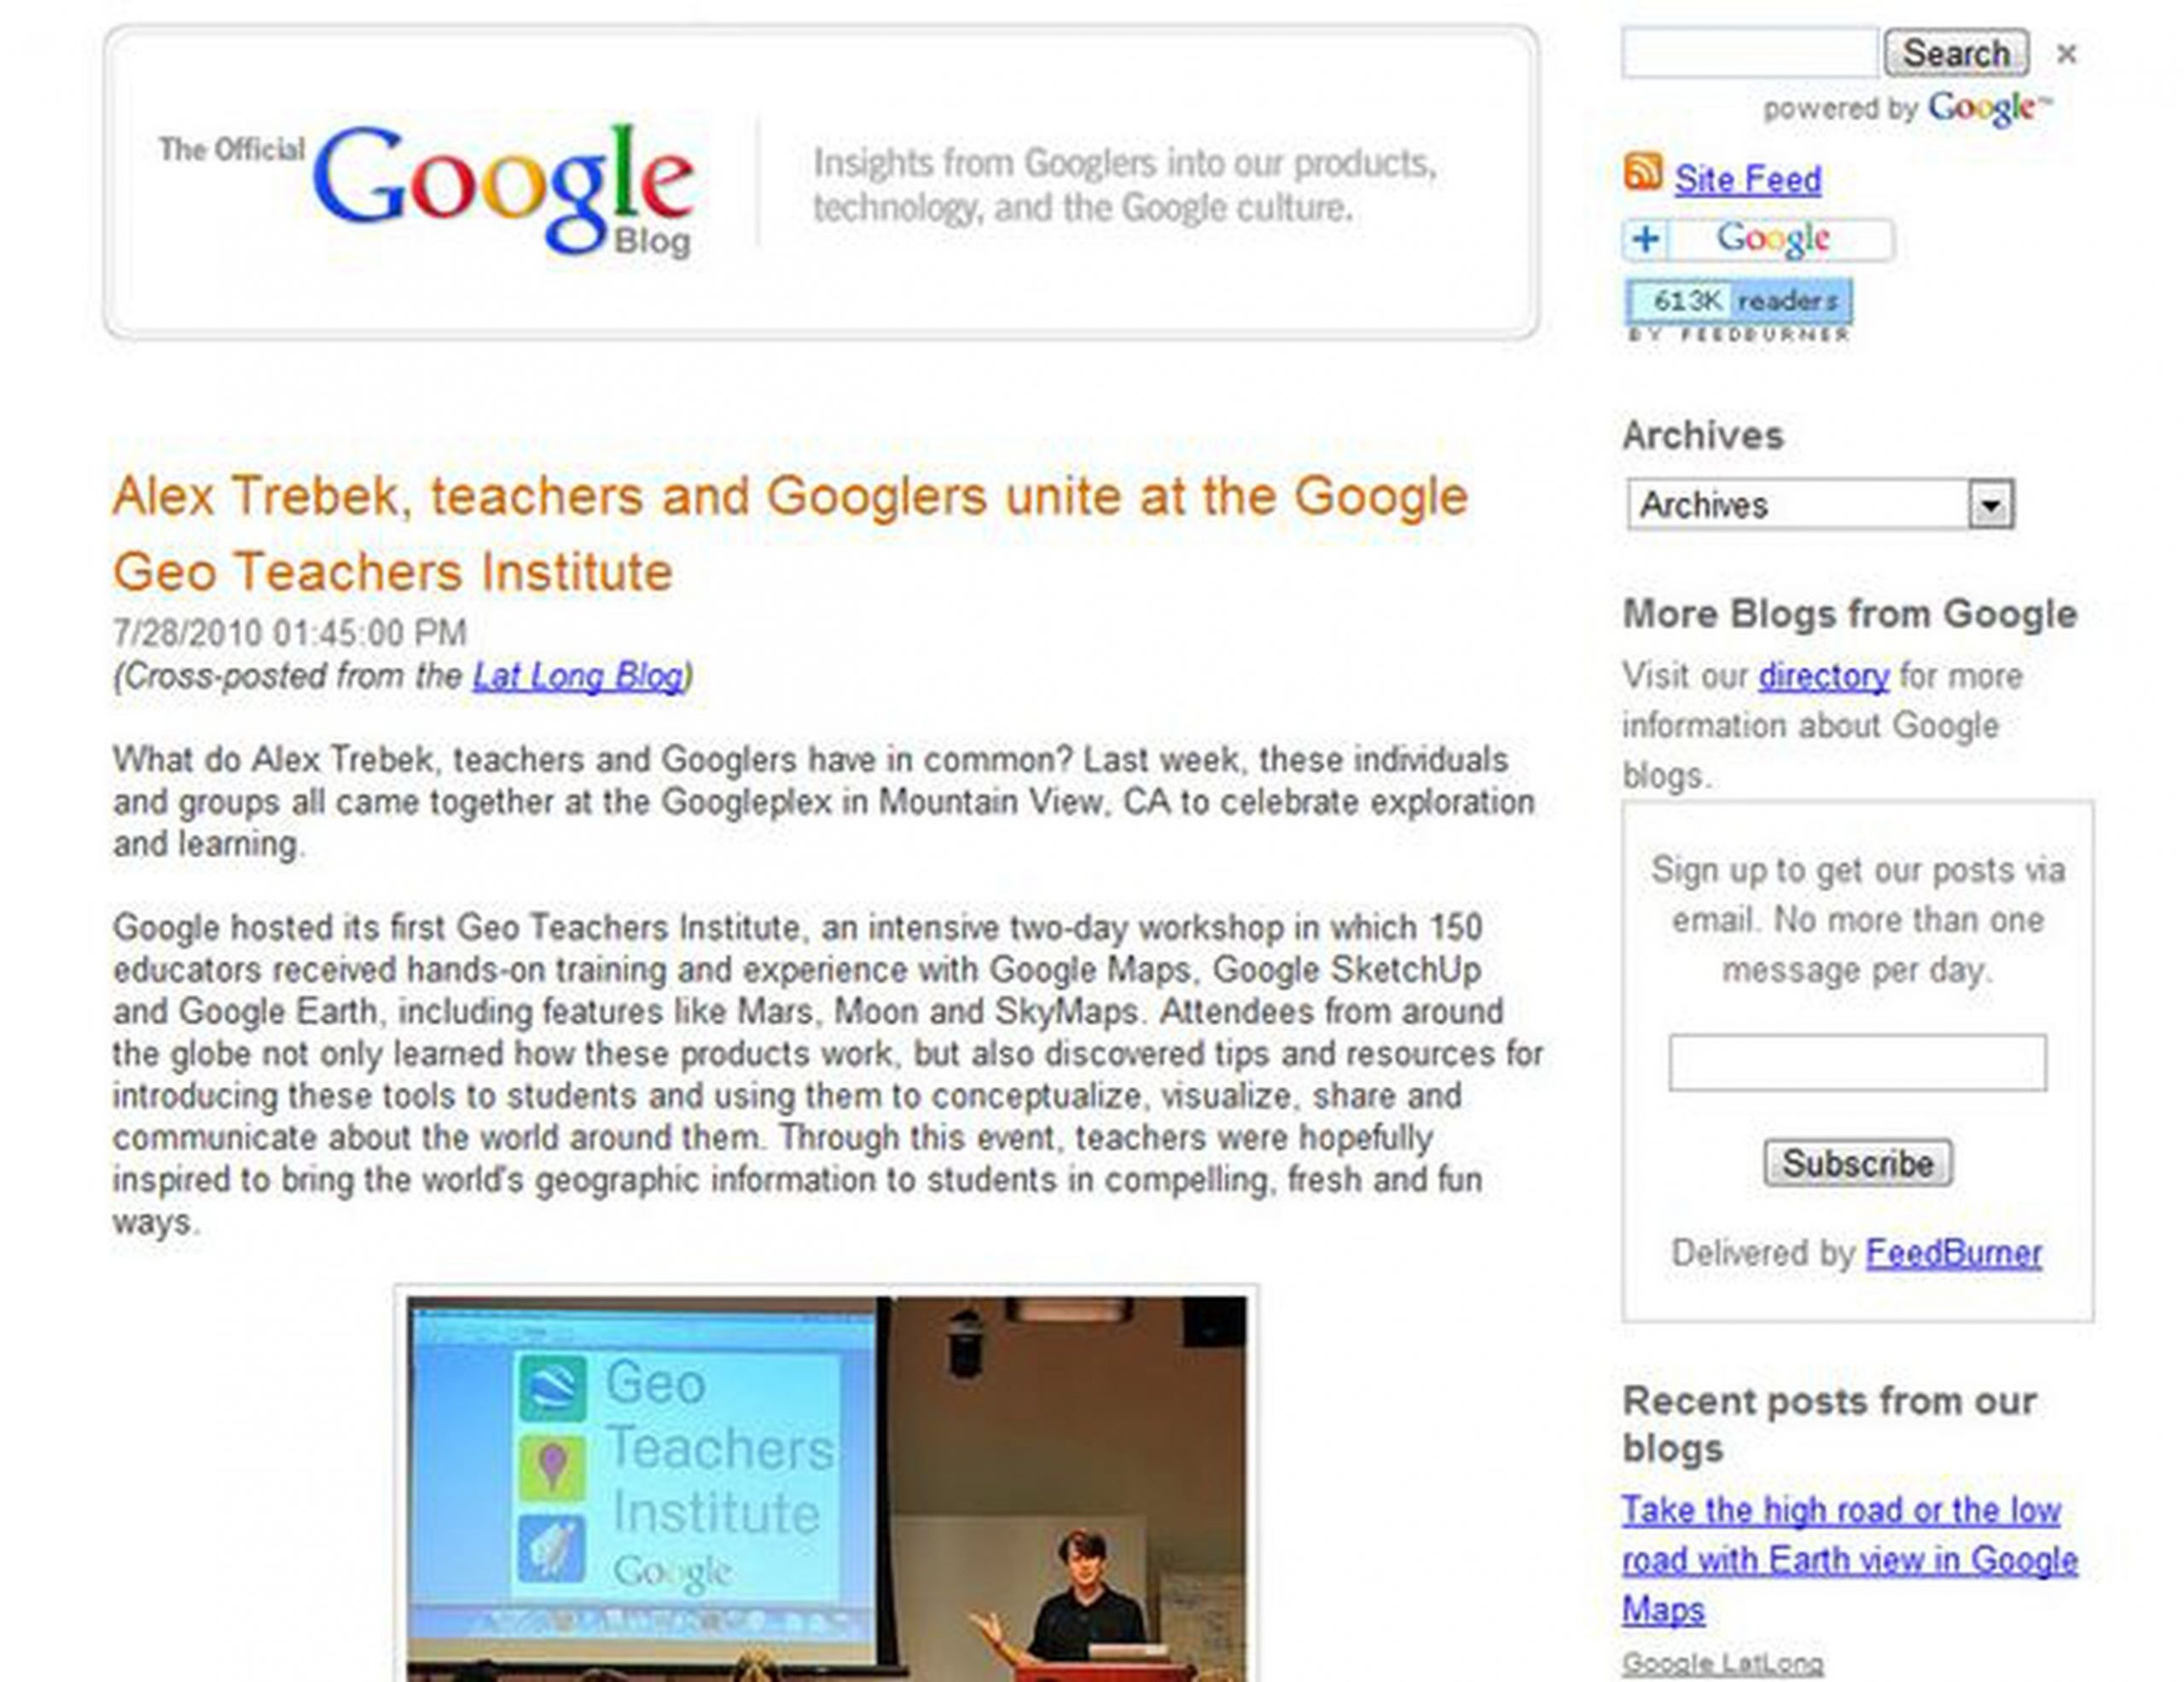 Google Blog: Include Employees from Across the Company